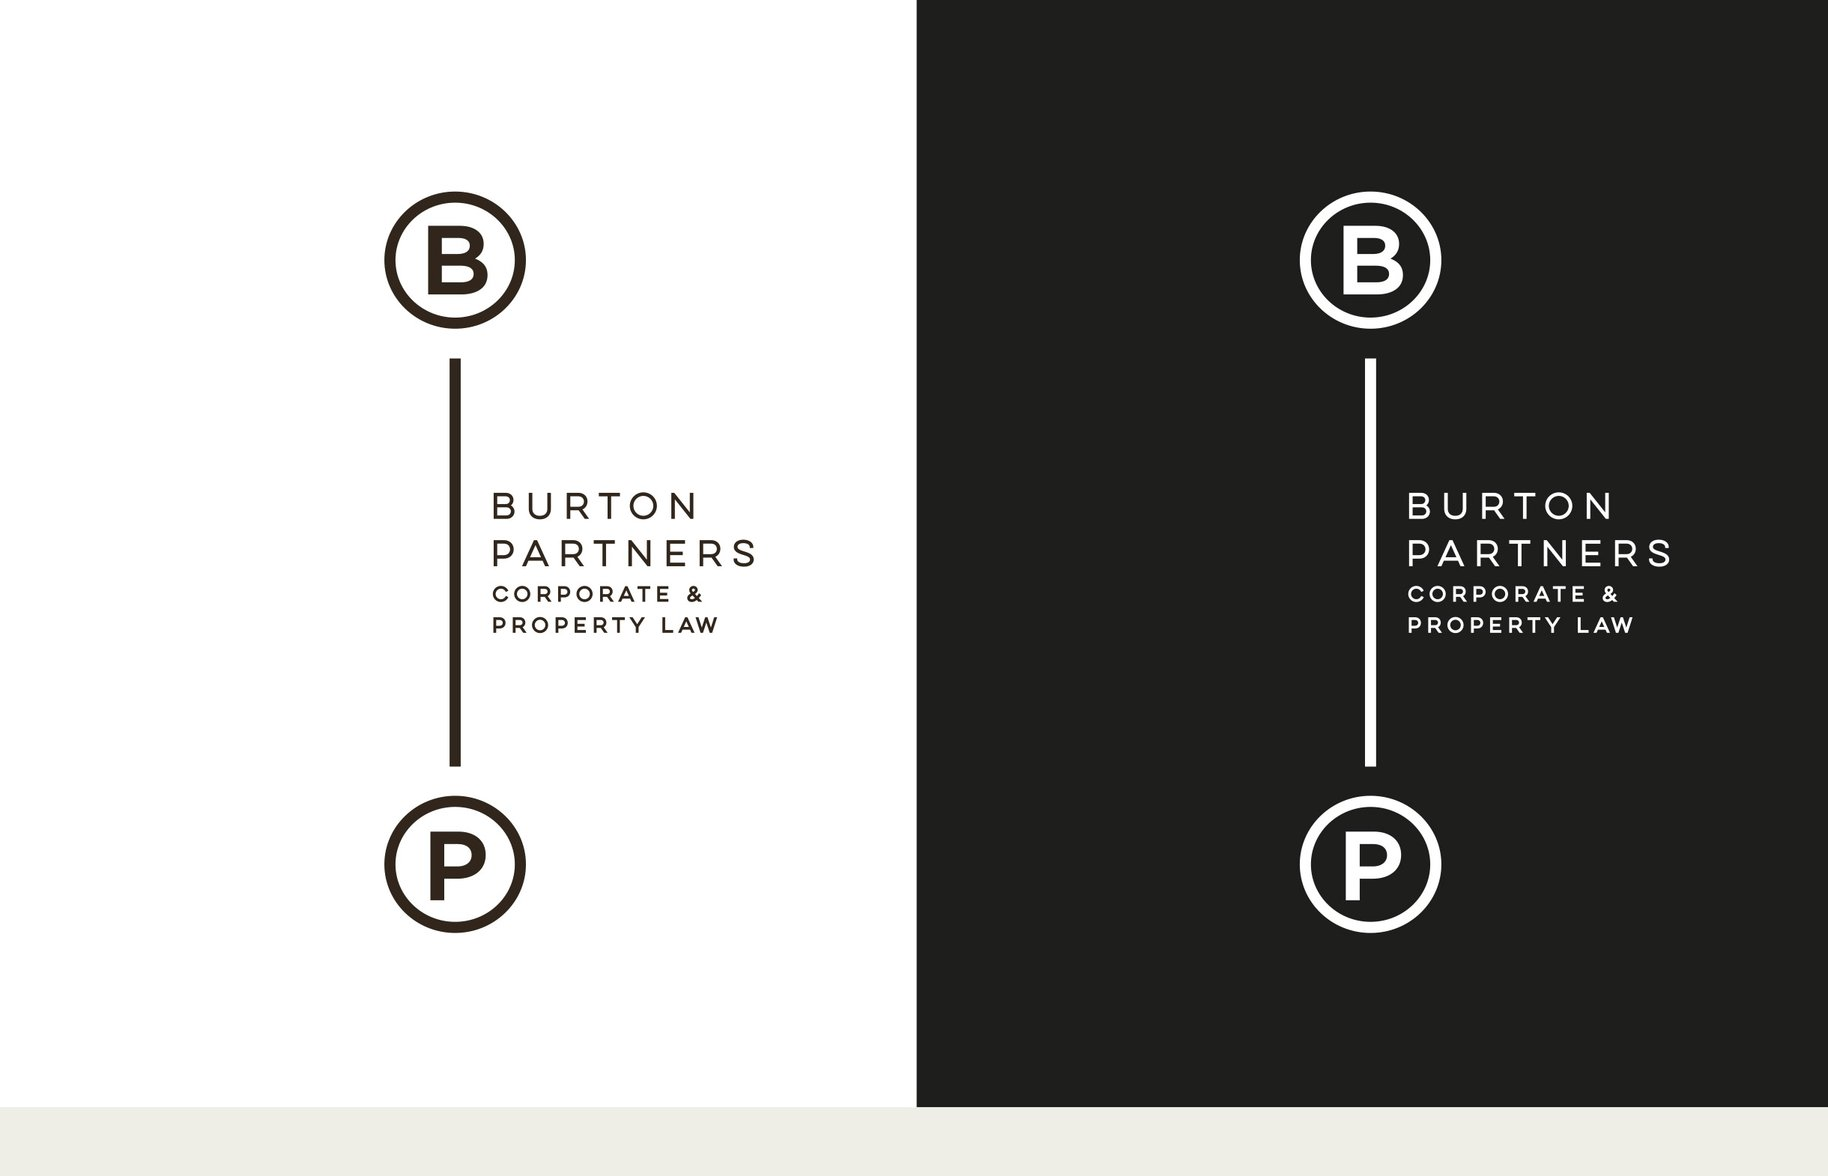 Burton Partners Corporate and Property Law logo black and white